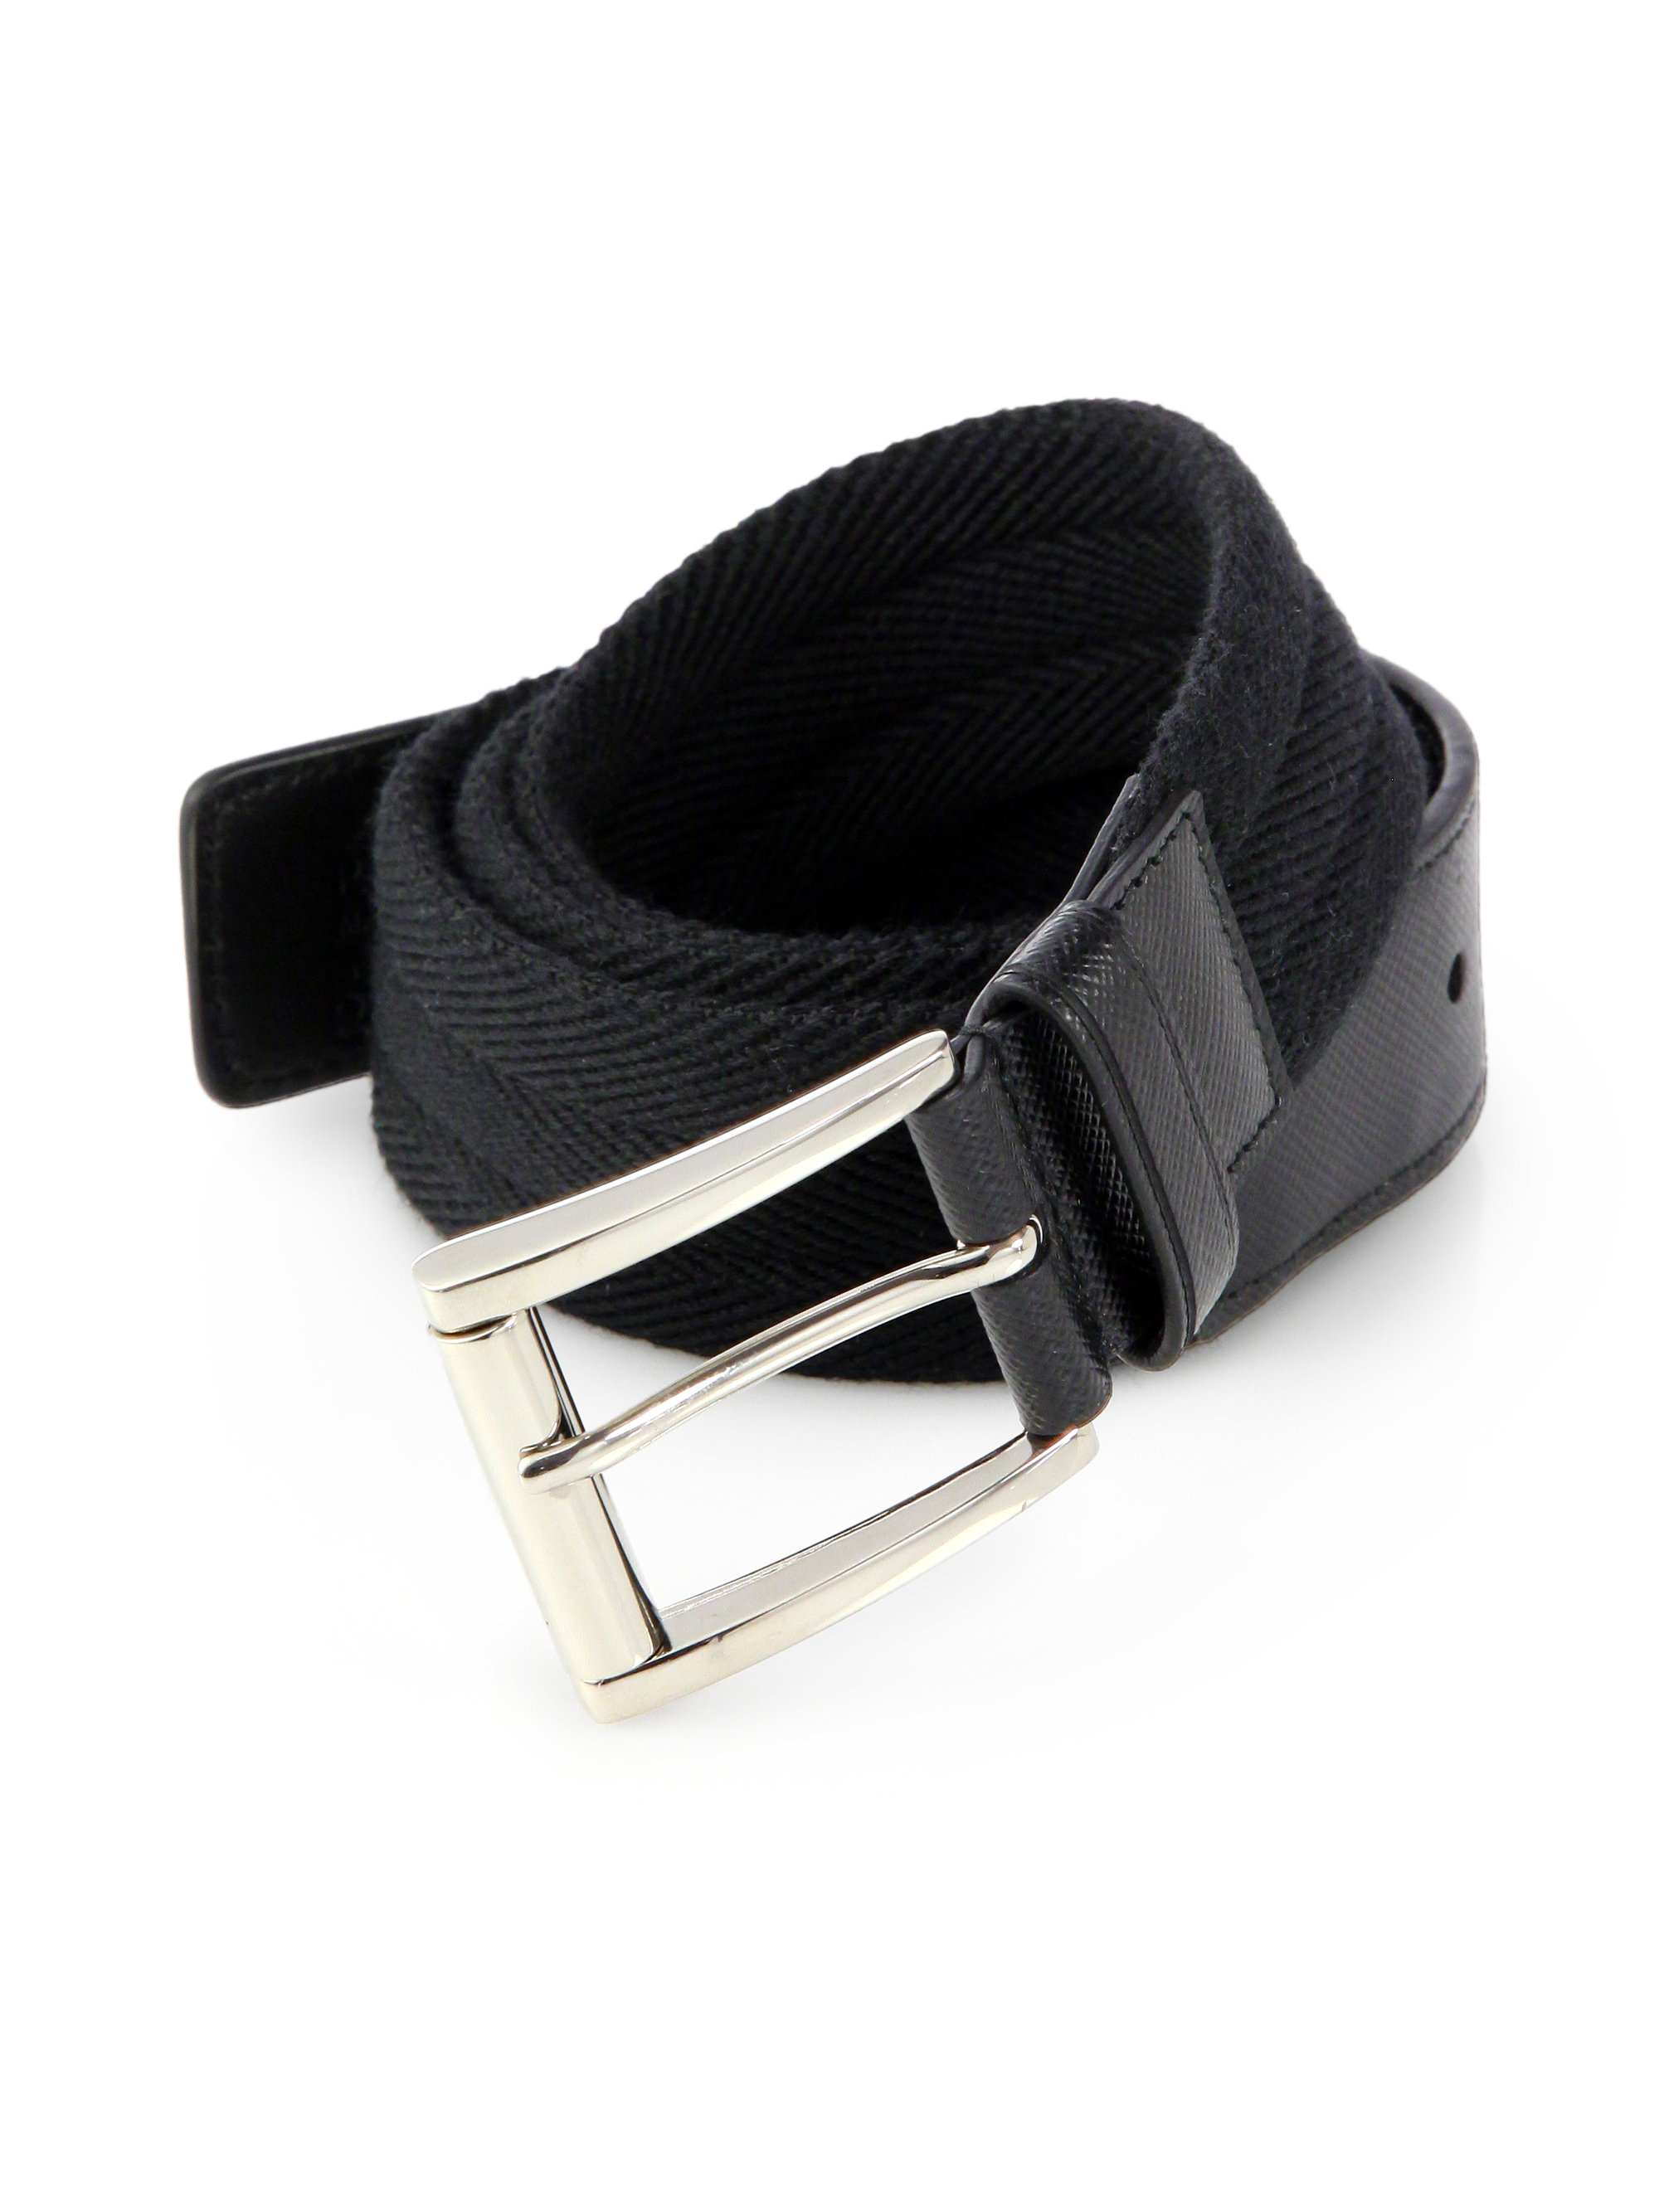 Prada Wool \u0026amp; Saffiano Belt in Black for Men | Lyst